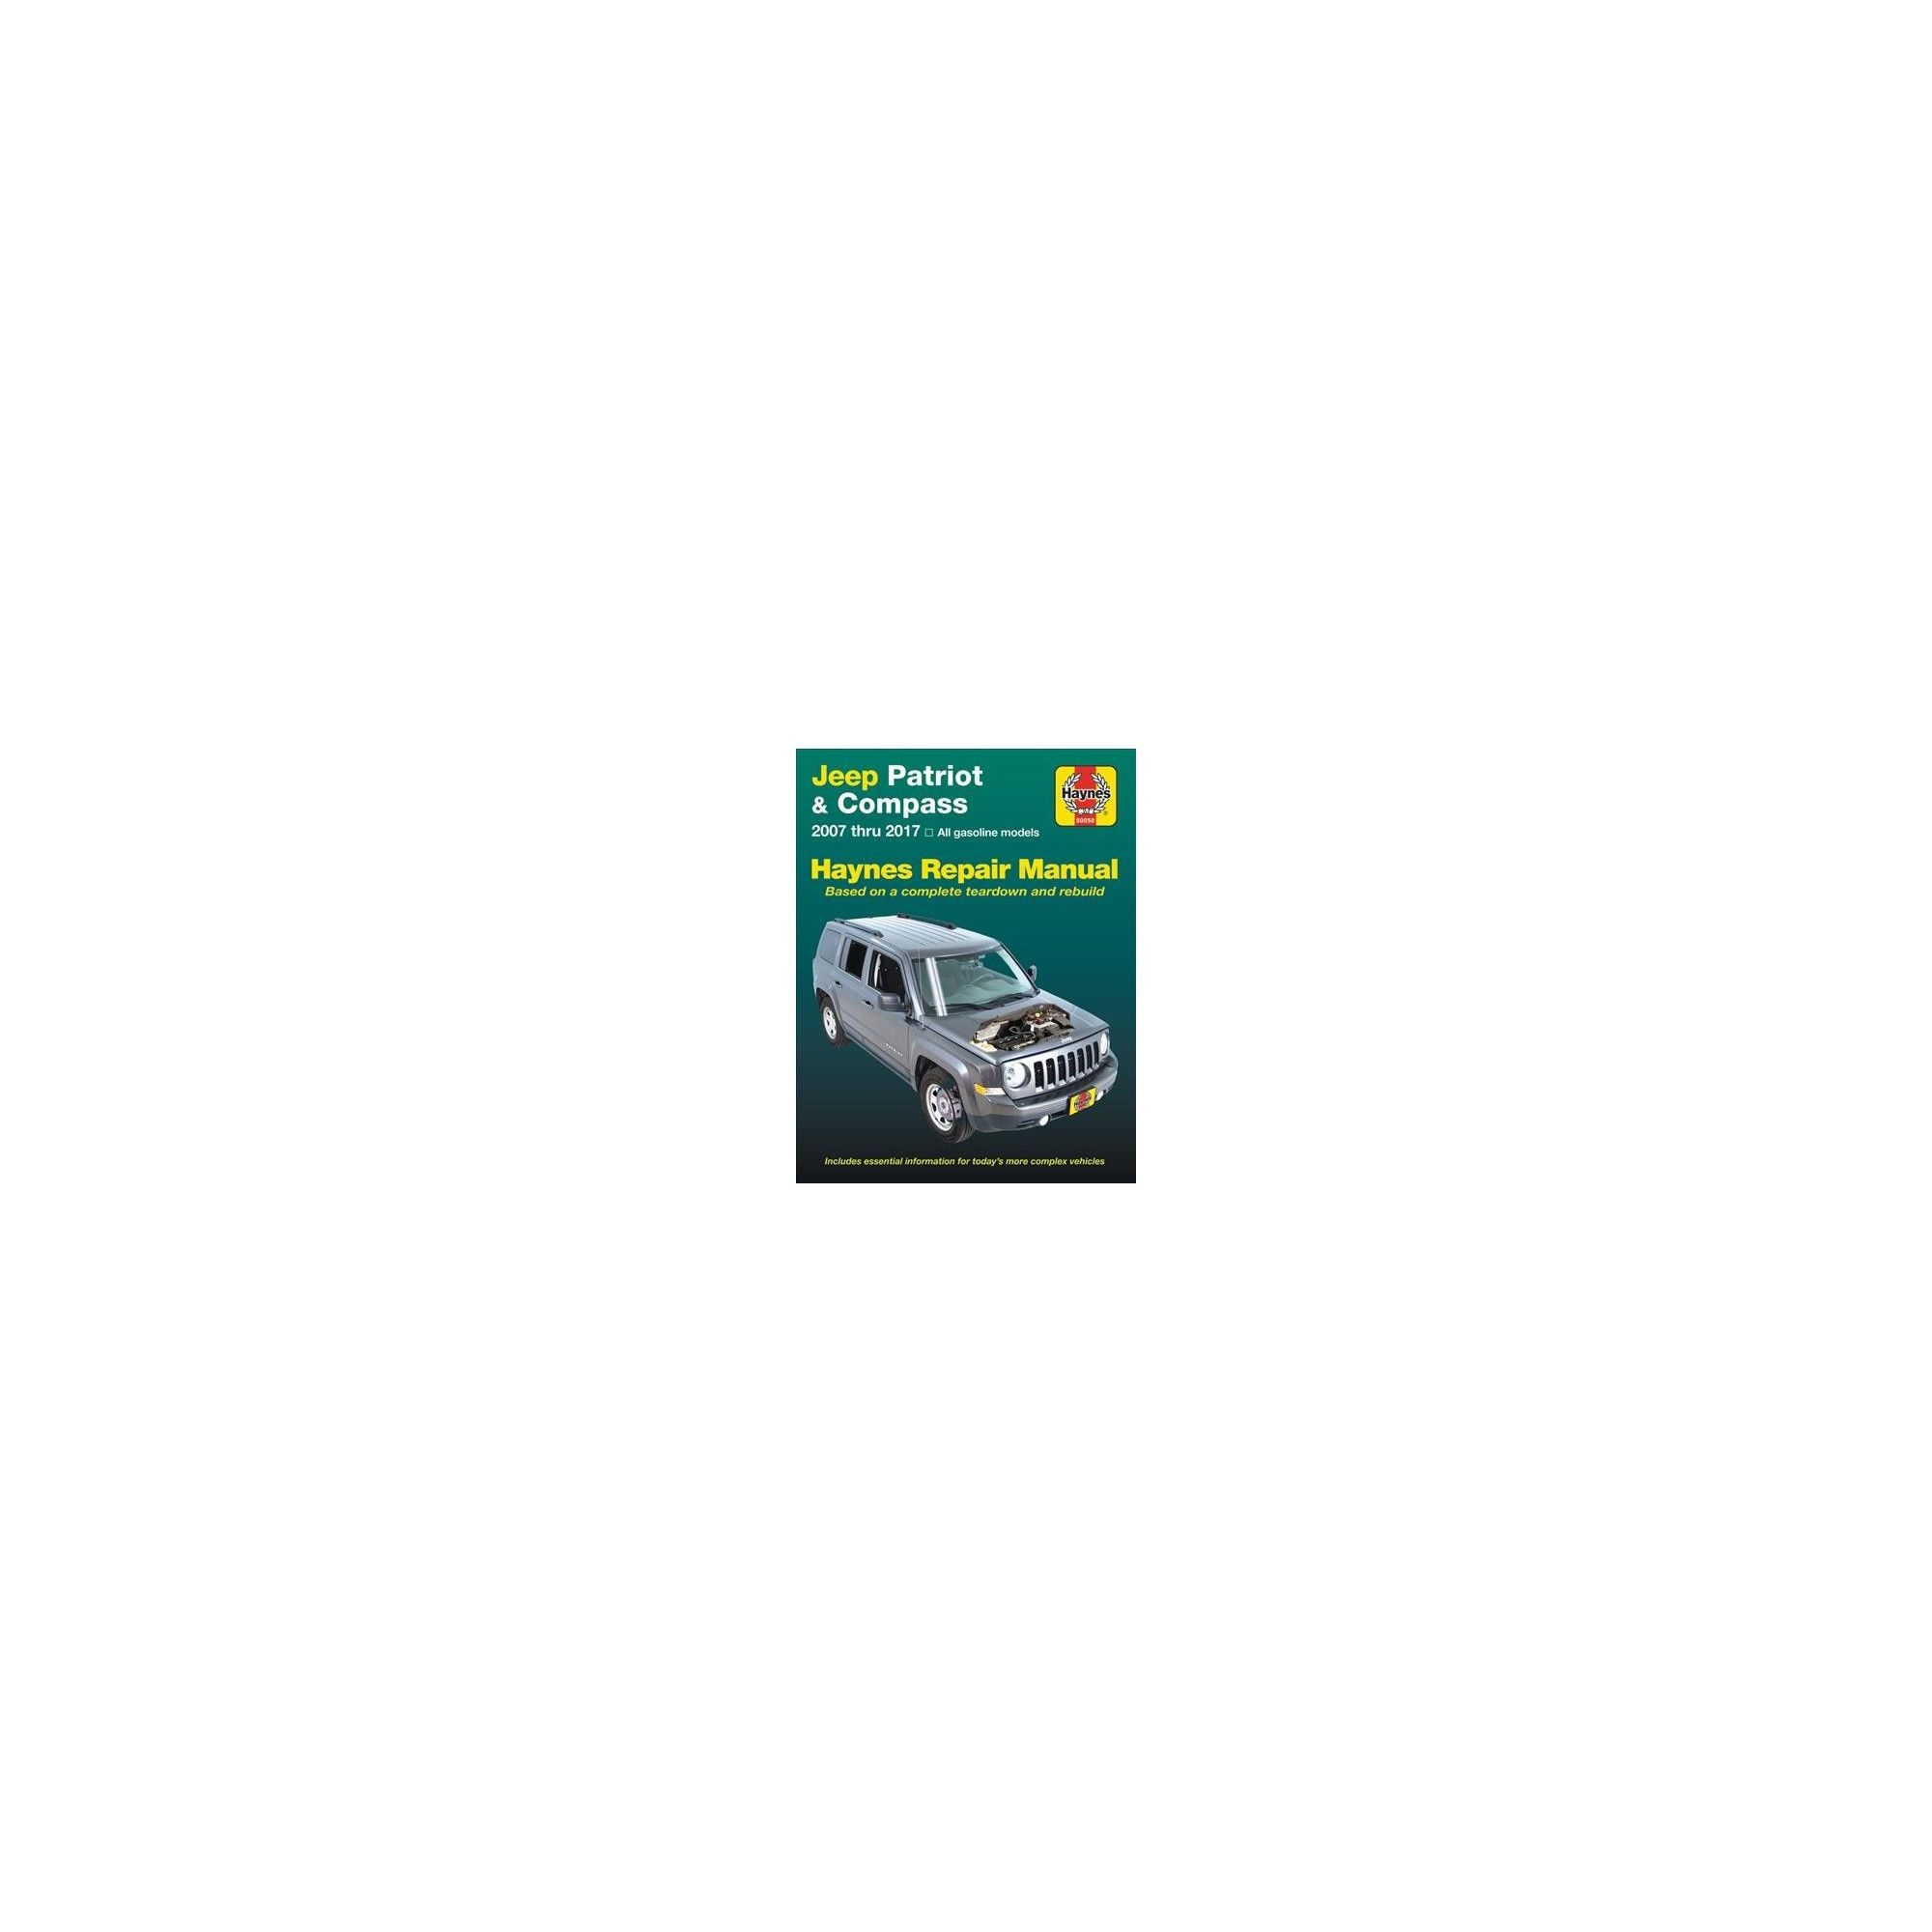 Jeep Patriot Compass 2007 Thru 2017 Haynes Repair Manual